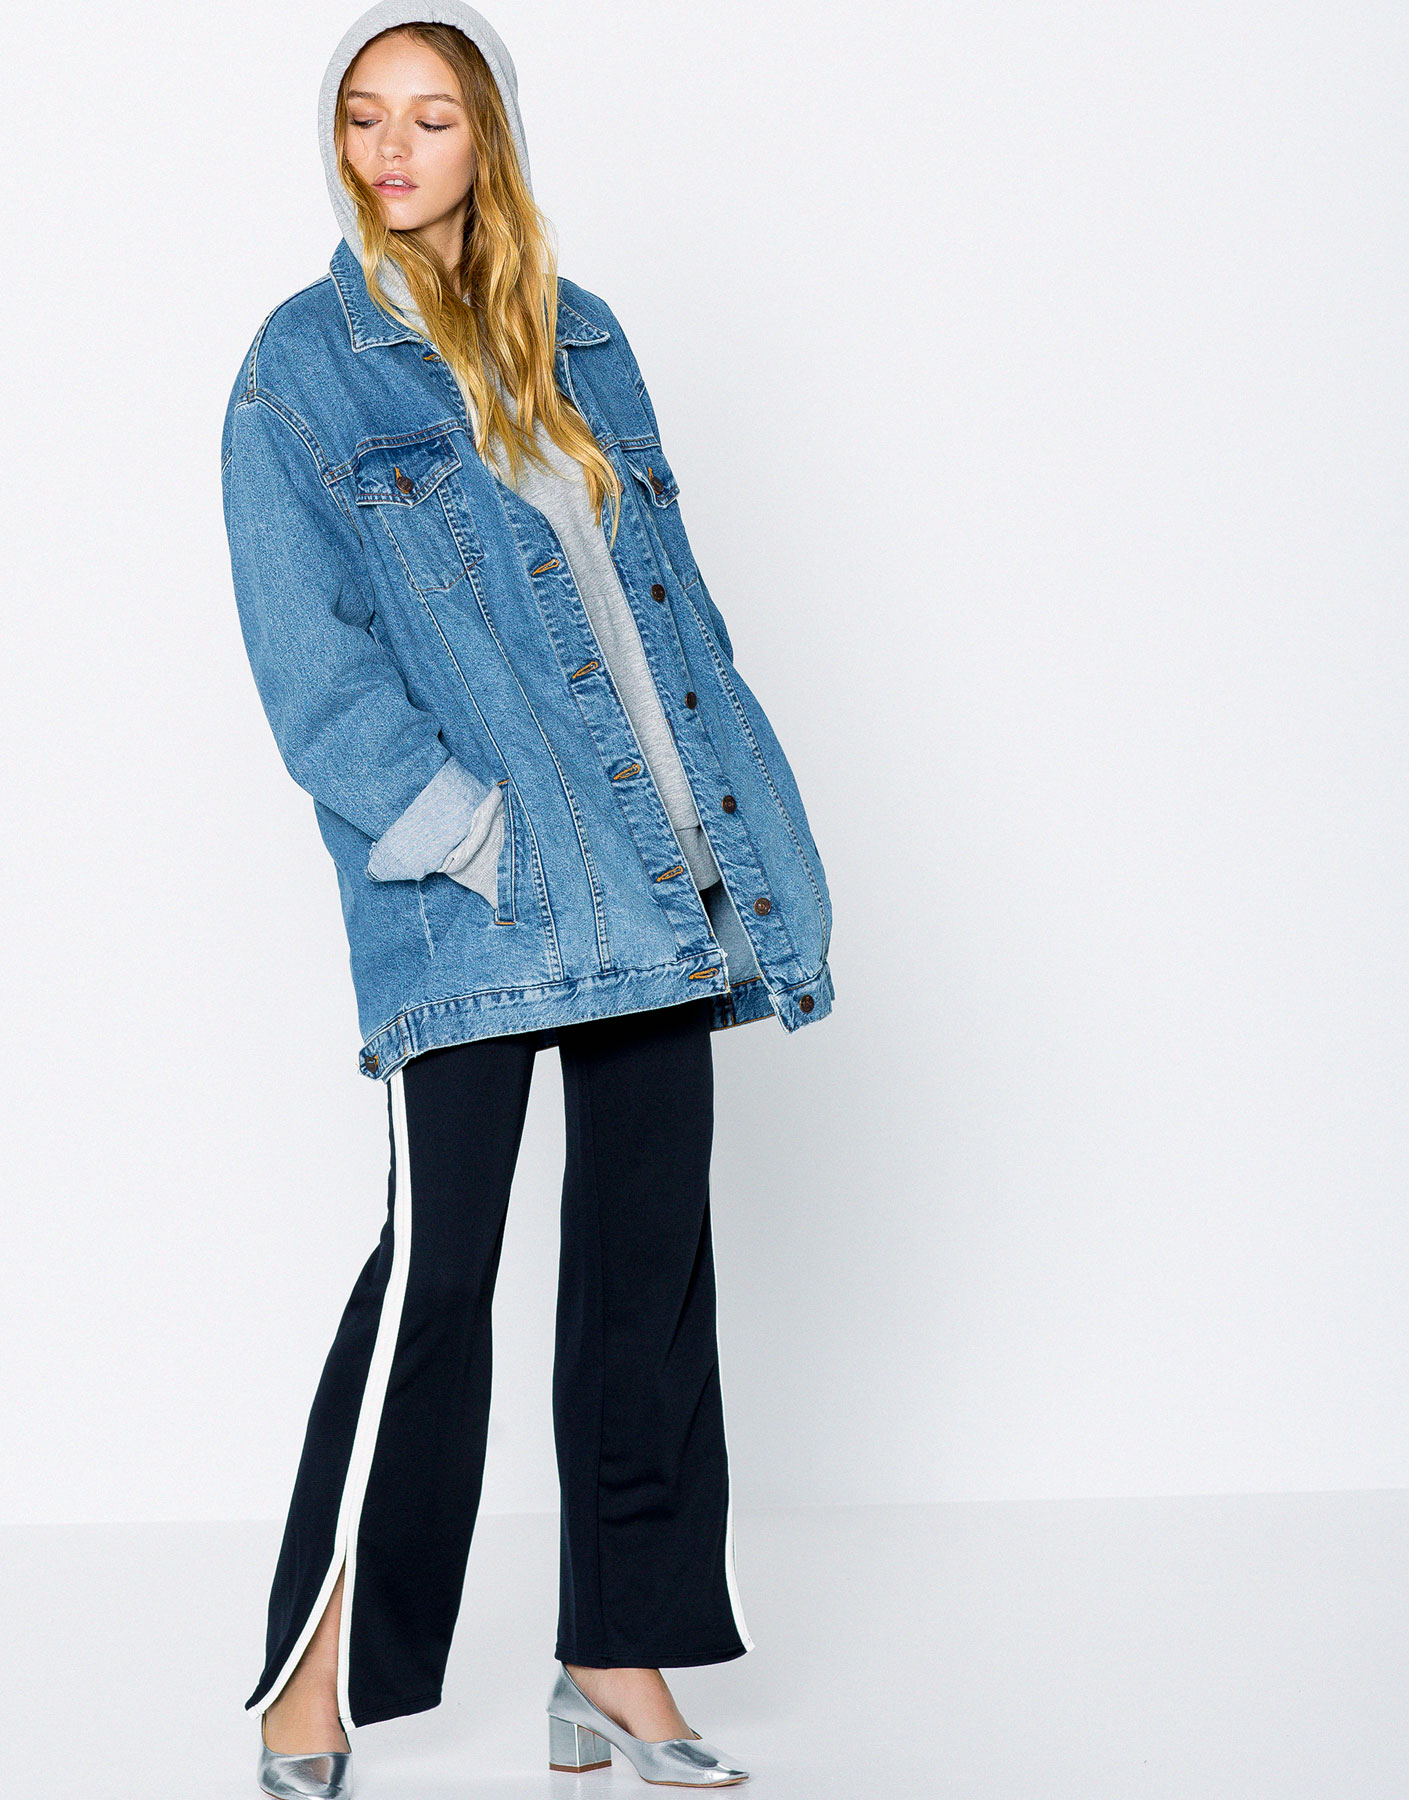 Caçadora denim long fit